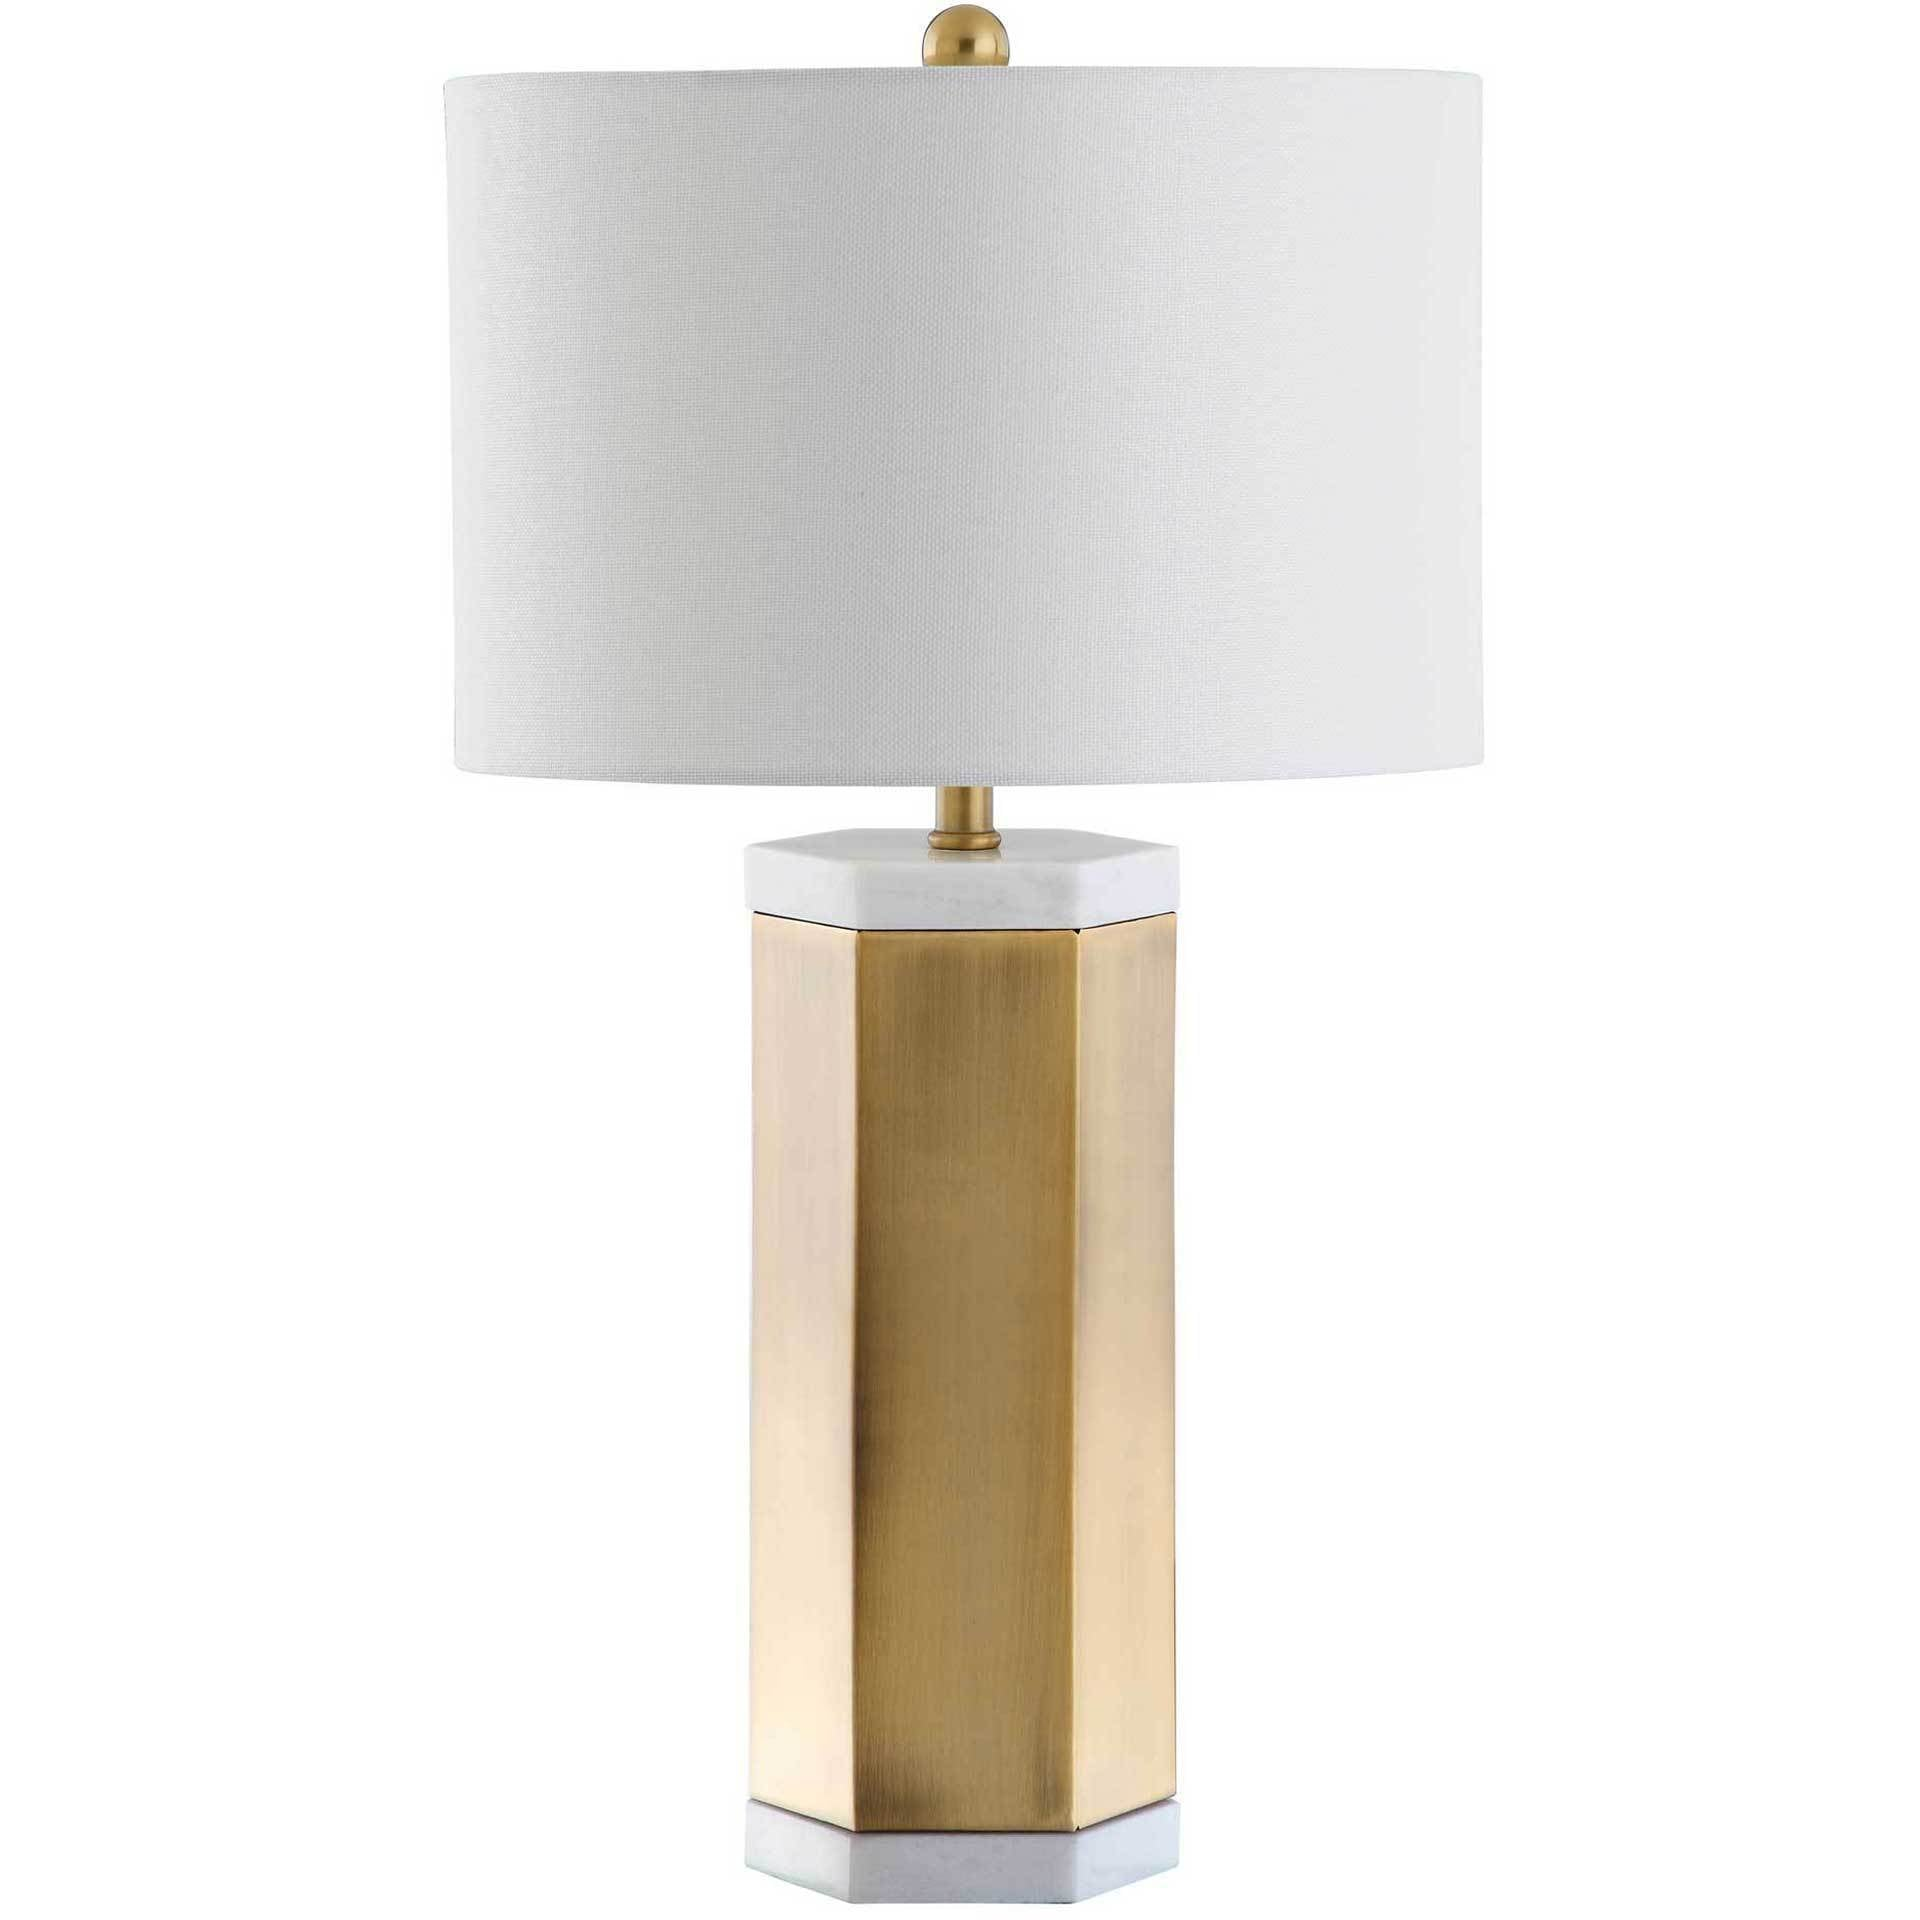 Alyra Table Lamp White/Brass Gold (Set of 2)